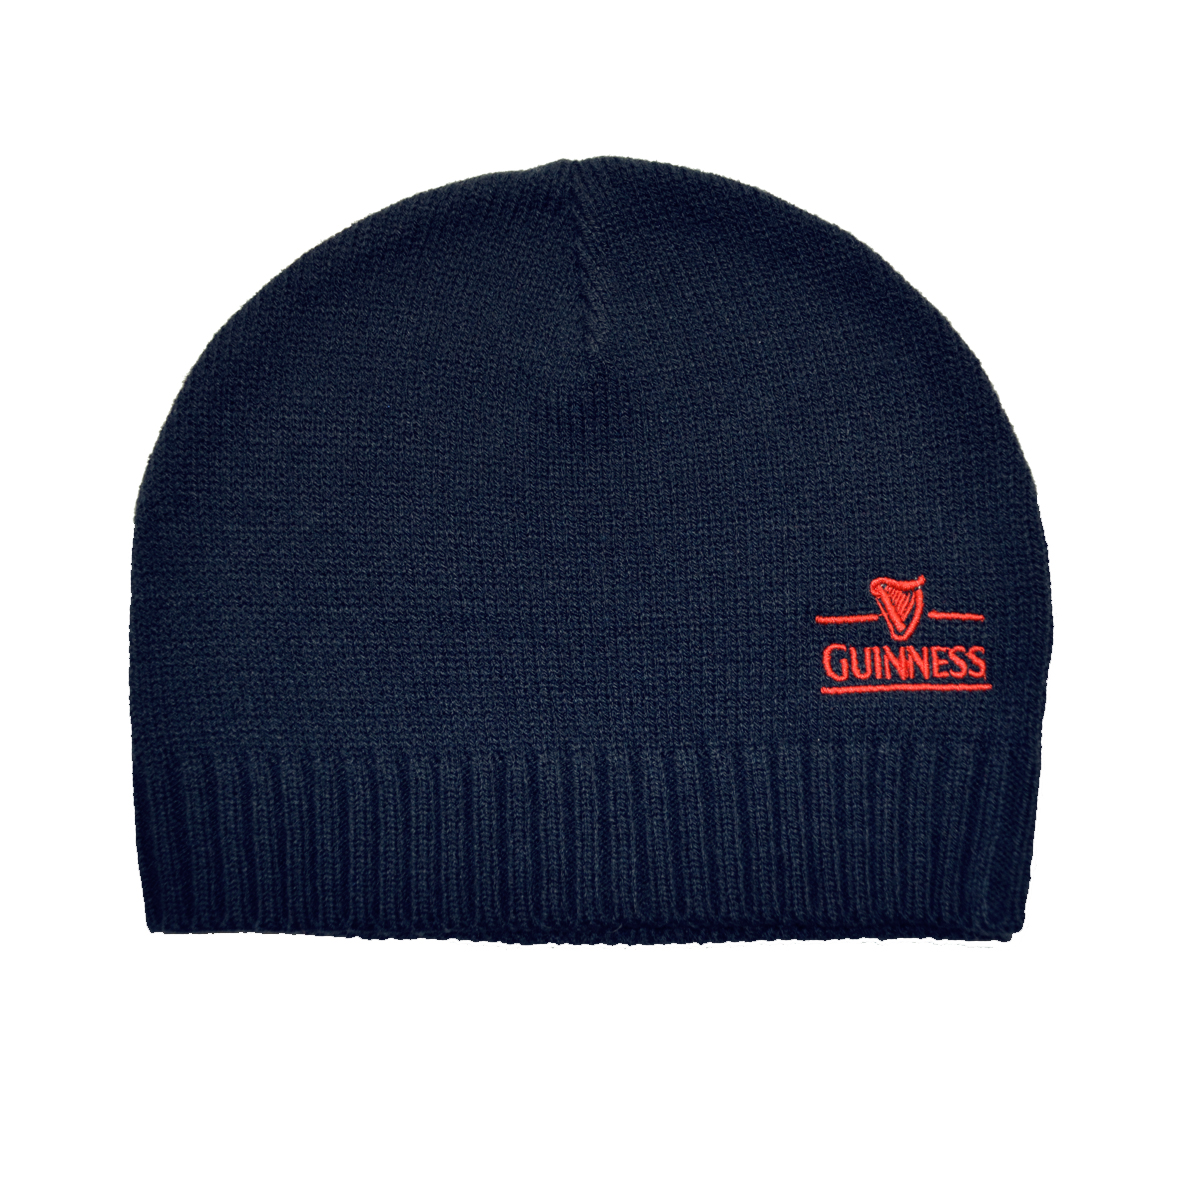 Guinness Harp Knit Hat - One Size NAVY - Click Image to Close